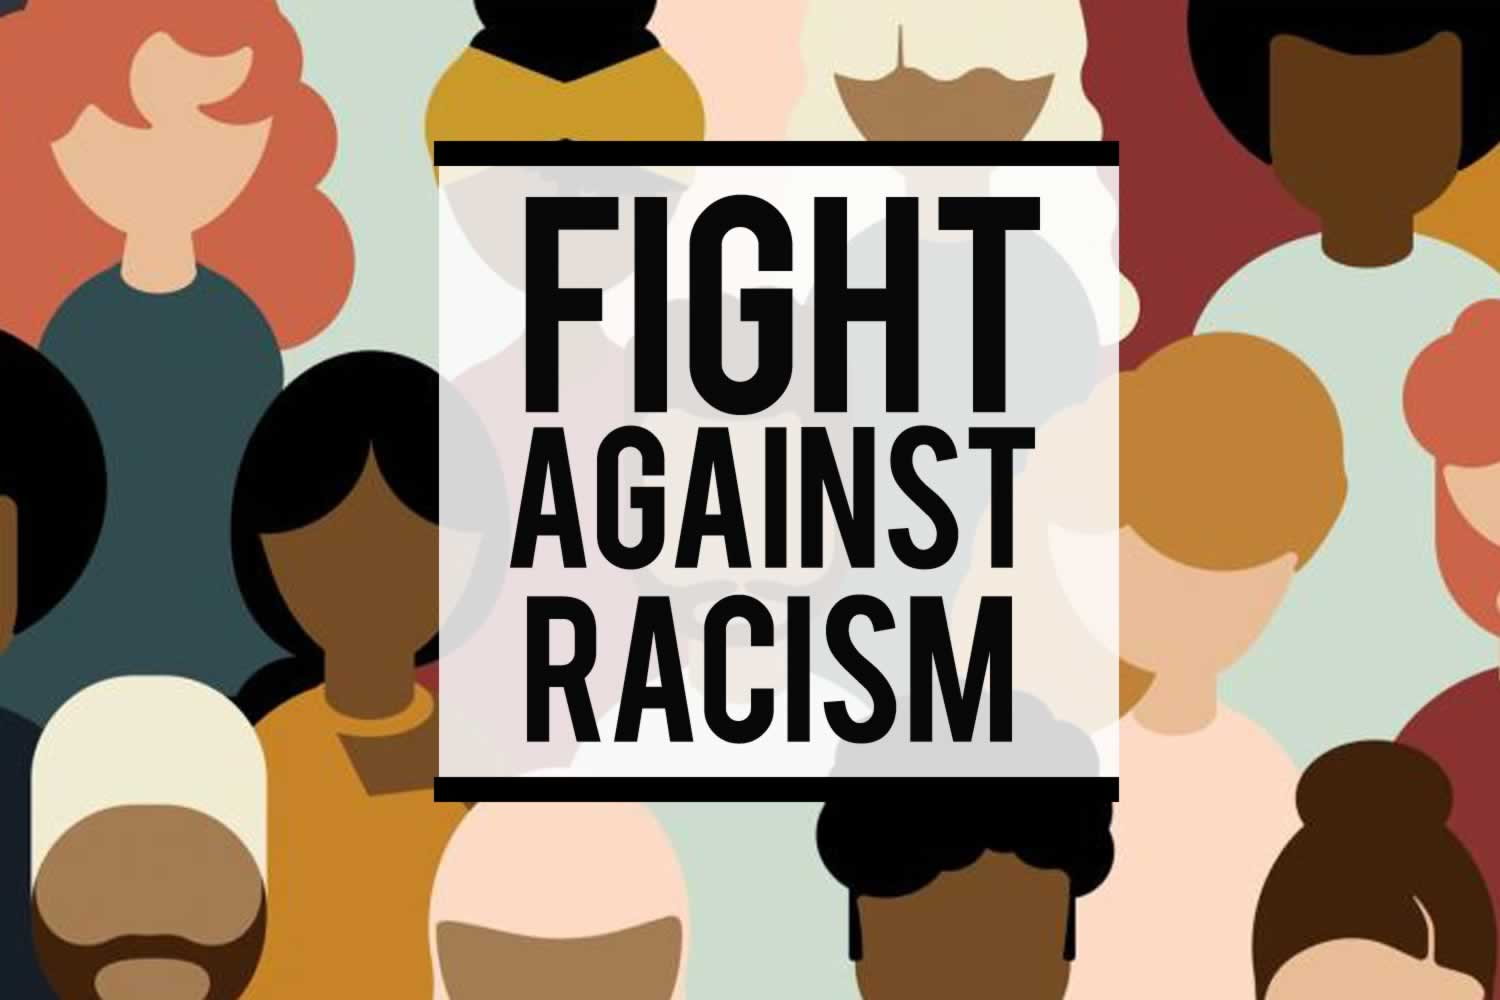 OPSEU/SEFPO commits to end racism, today and every day